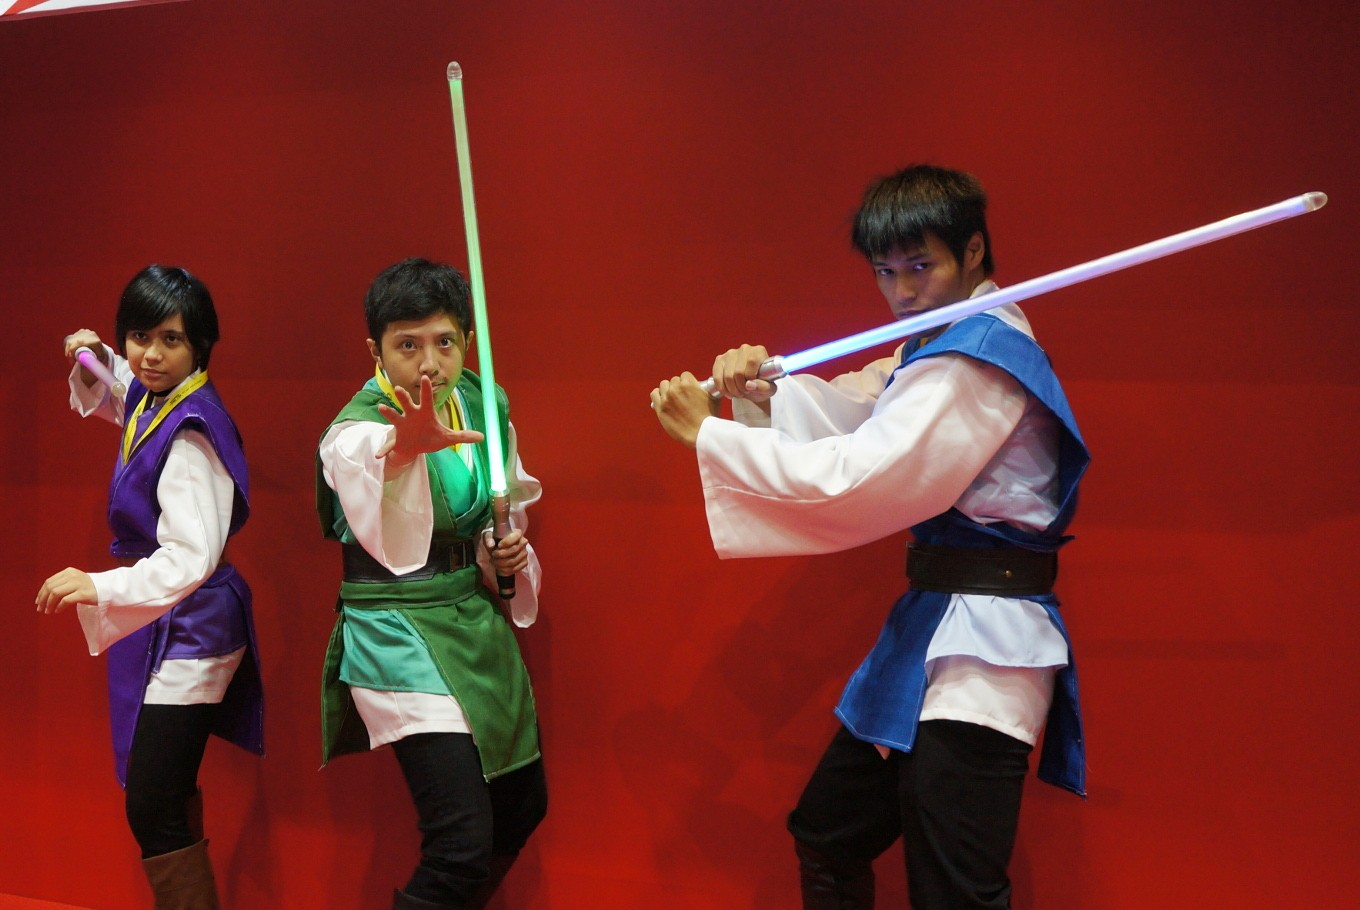 Members of Fightsaber Indonesia strike a pose with their lightsabers during the 2017 Indonesia Comic Con.